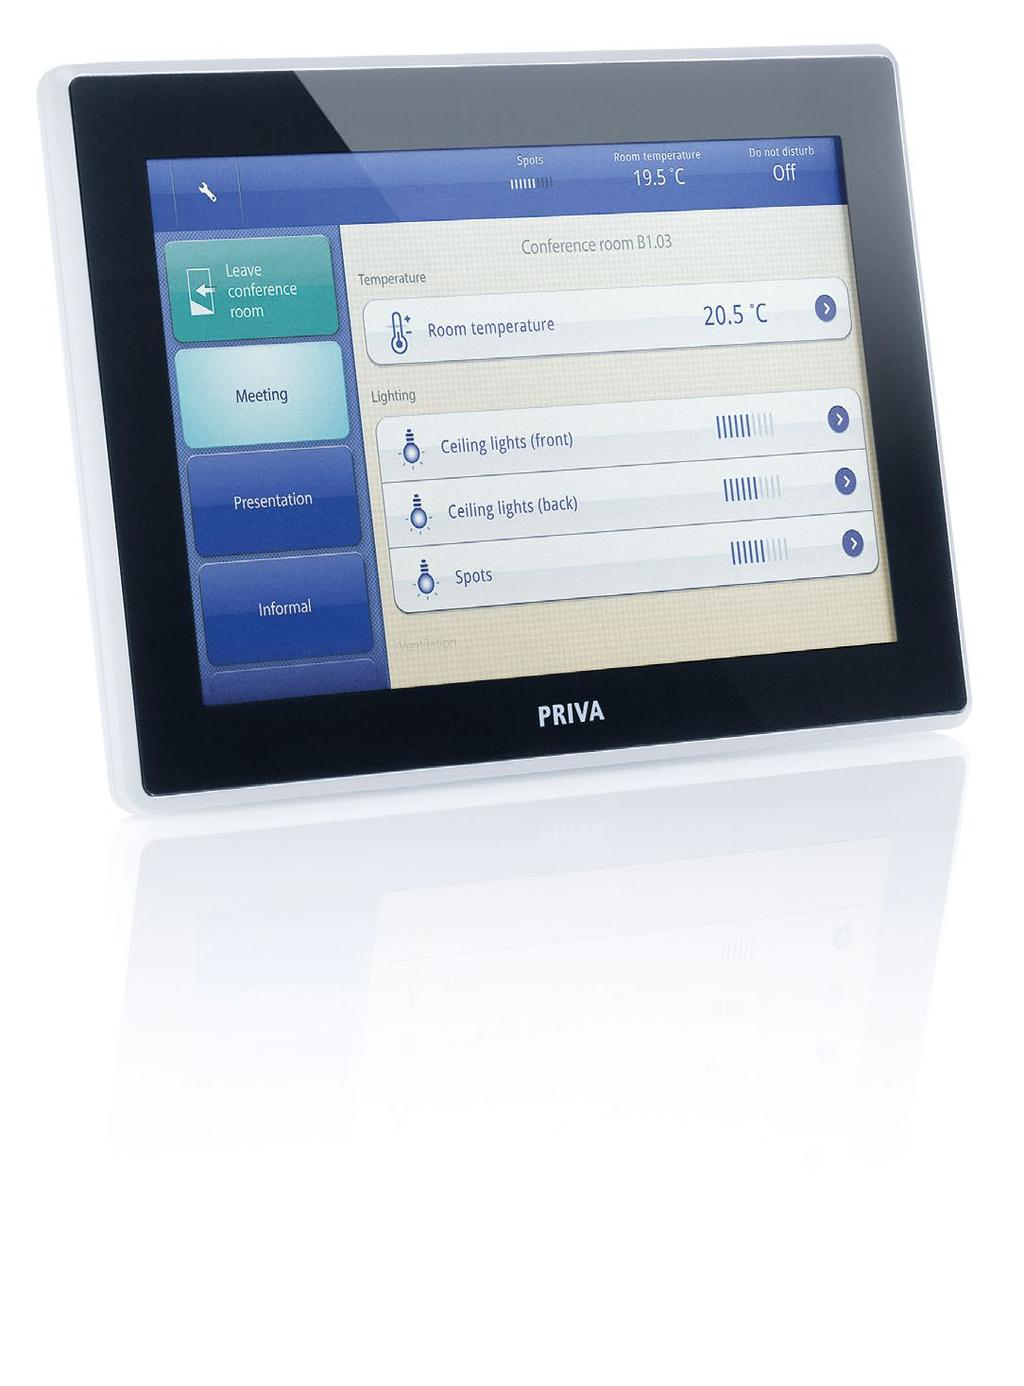 PRIVA BLUE ID TOUCHPOINT Priva Blue ID Touchpoint: control spaces and buildings in style For the intuitive operation of spaces and smaller buildings, Priva developed Blue ID Touchpoint, a